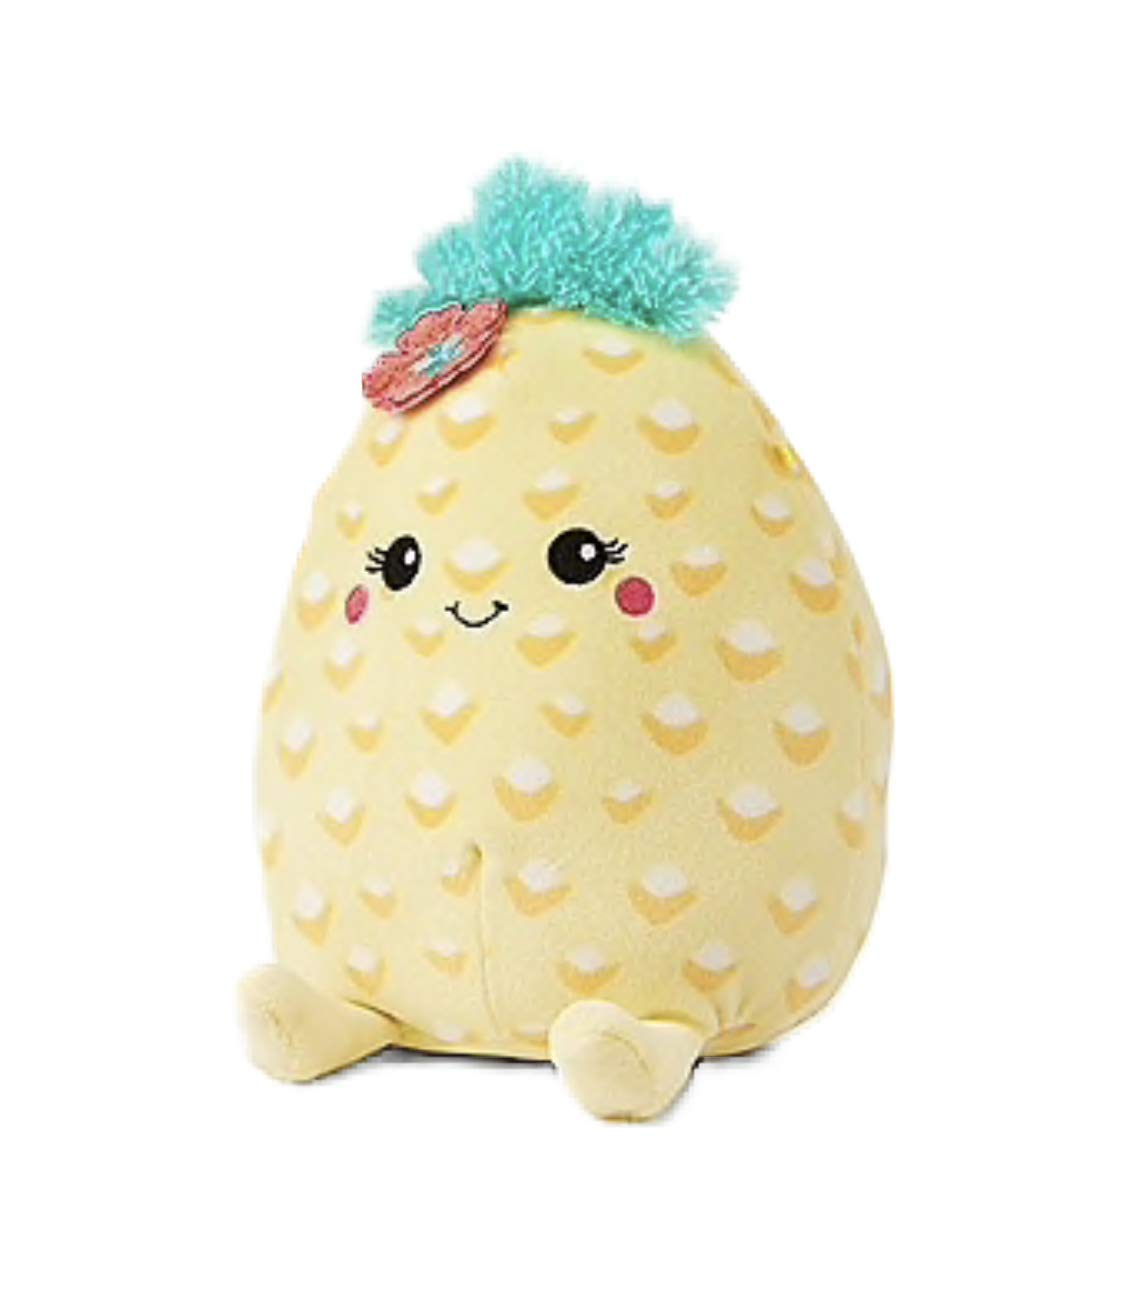 Squishmallows Justice 8'' Summer The Pineapple Yellow Super Soft Plush Pillow Stuffed Animal